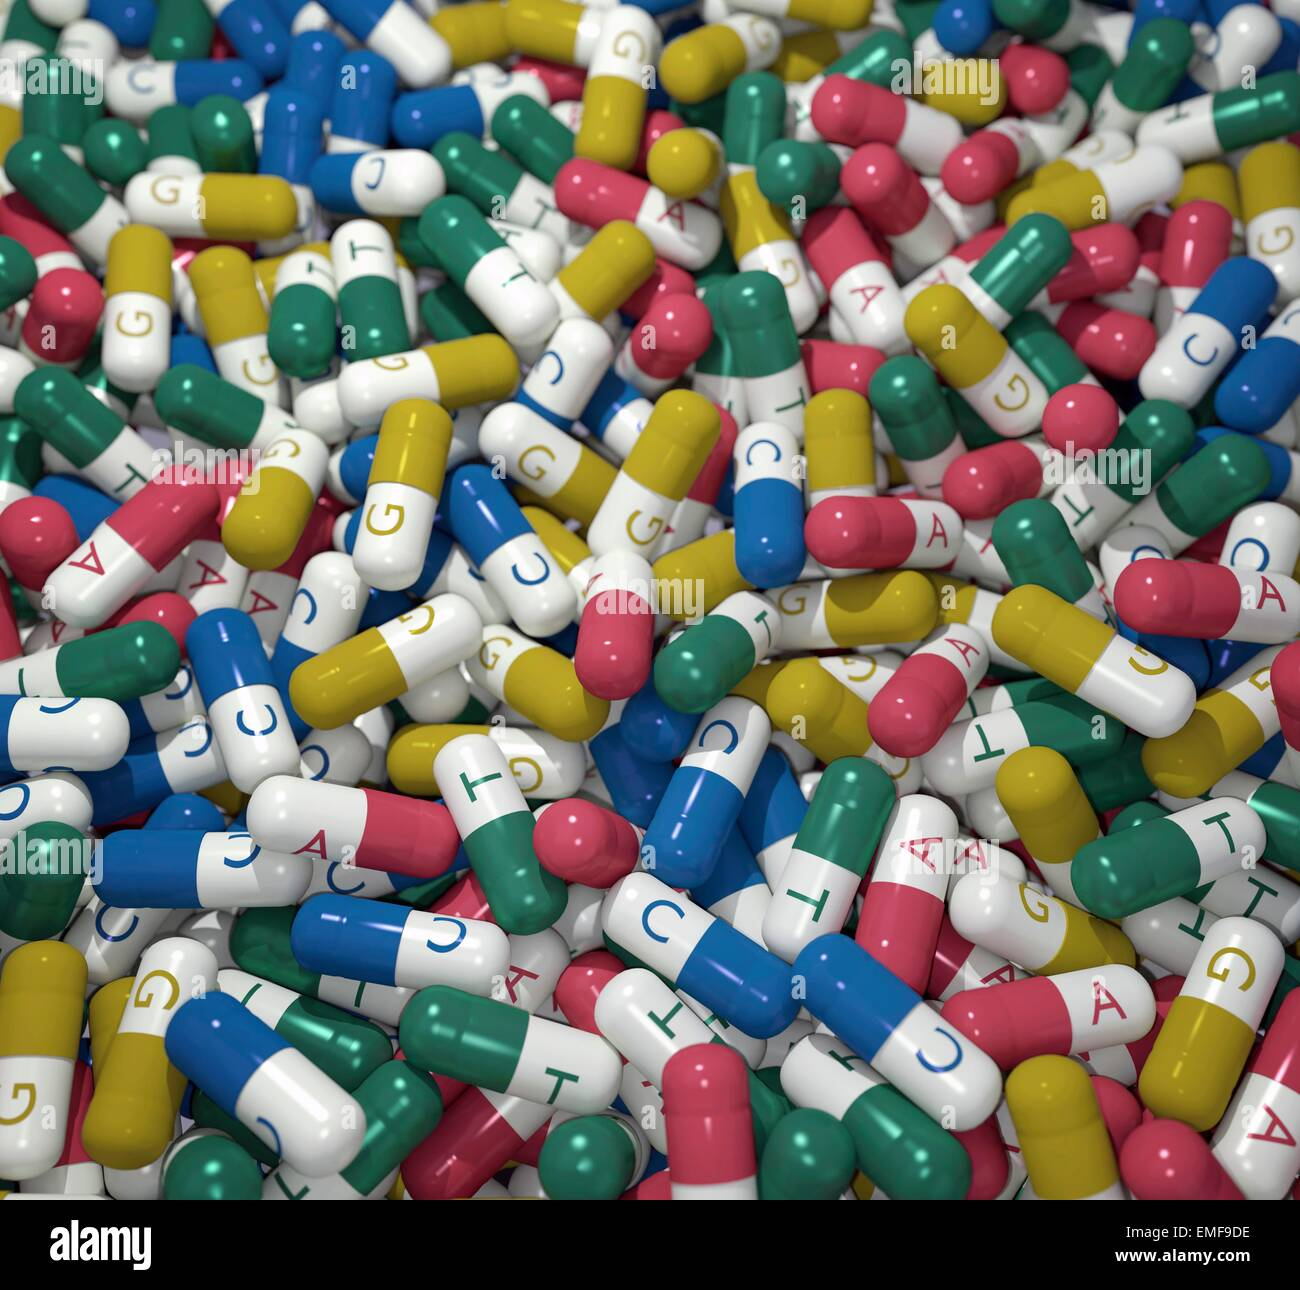 Capsules colour coded and labelled with the four bases of DNA. Conceptual image illustrating the interaction between - Stock Image